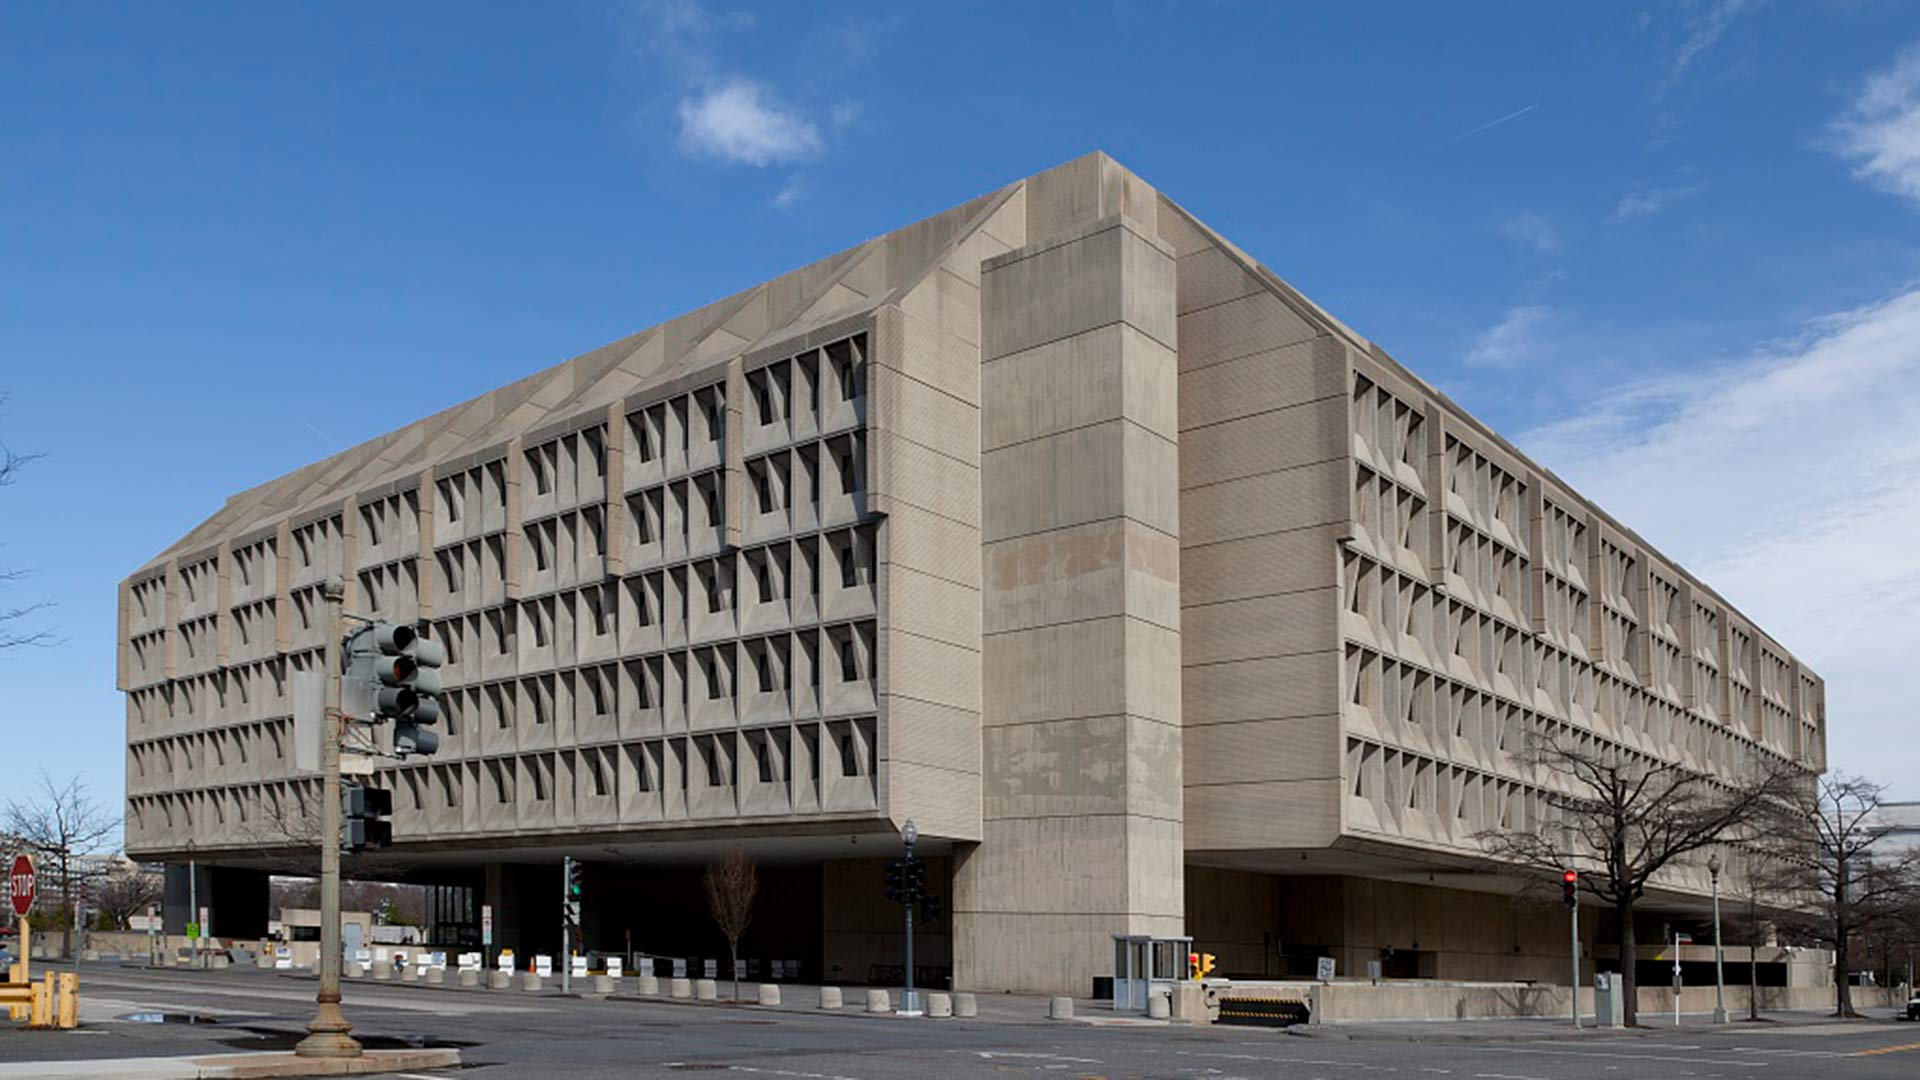 The Hubert H. Humphrey building in Washington, D.C., headquarters of U.S. Health and Human Services.